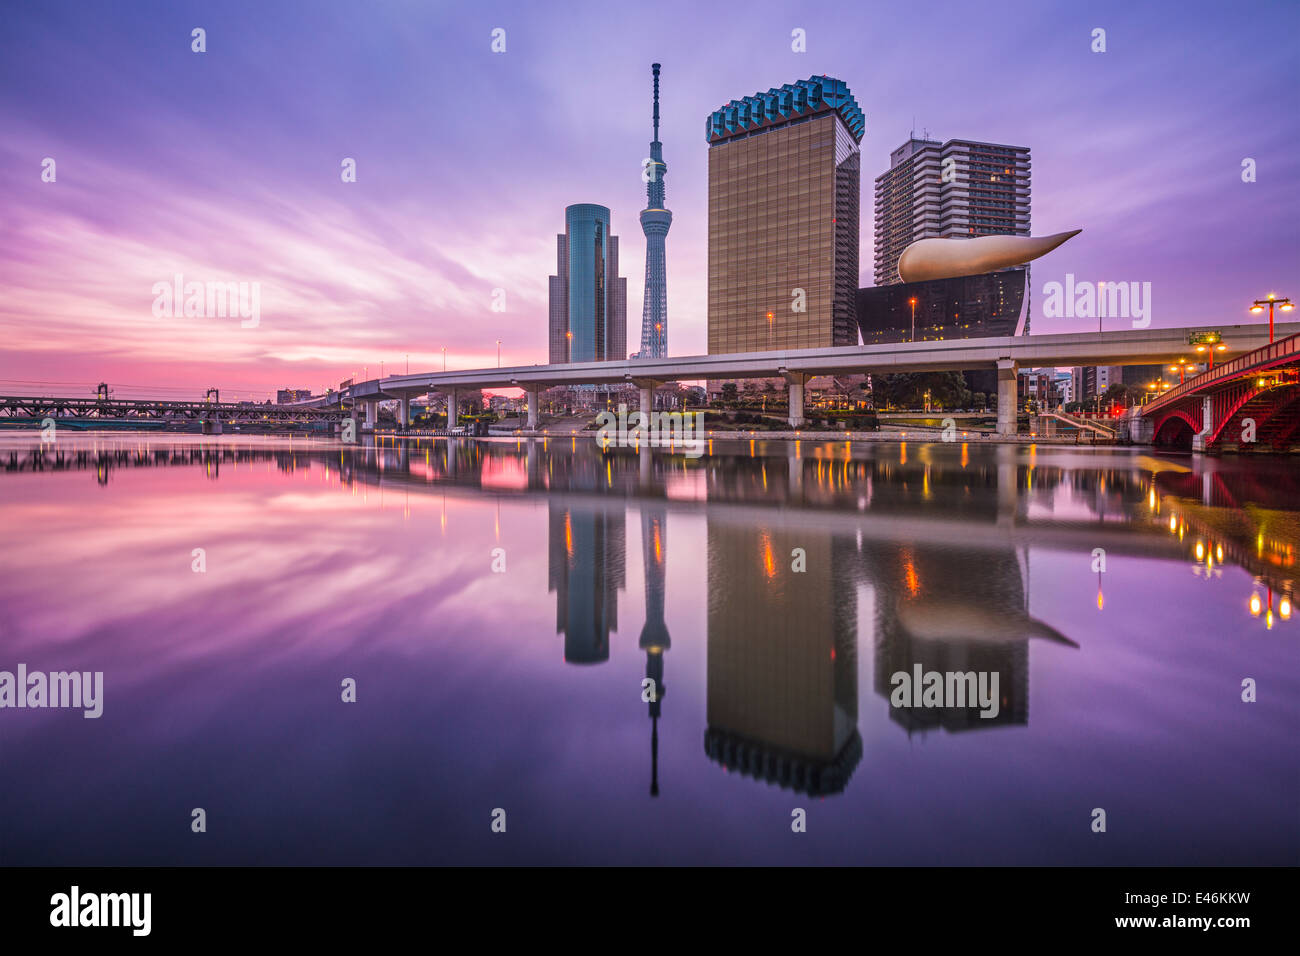 Tokyo, Japan skyline on the Sumida River. - Stock Image